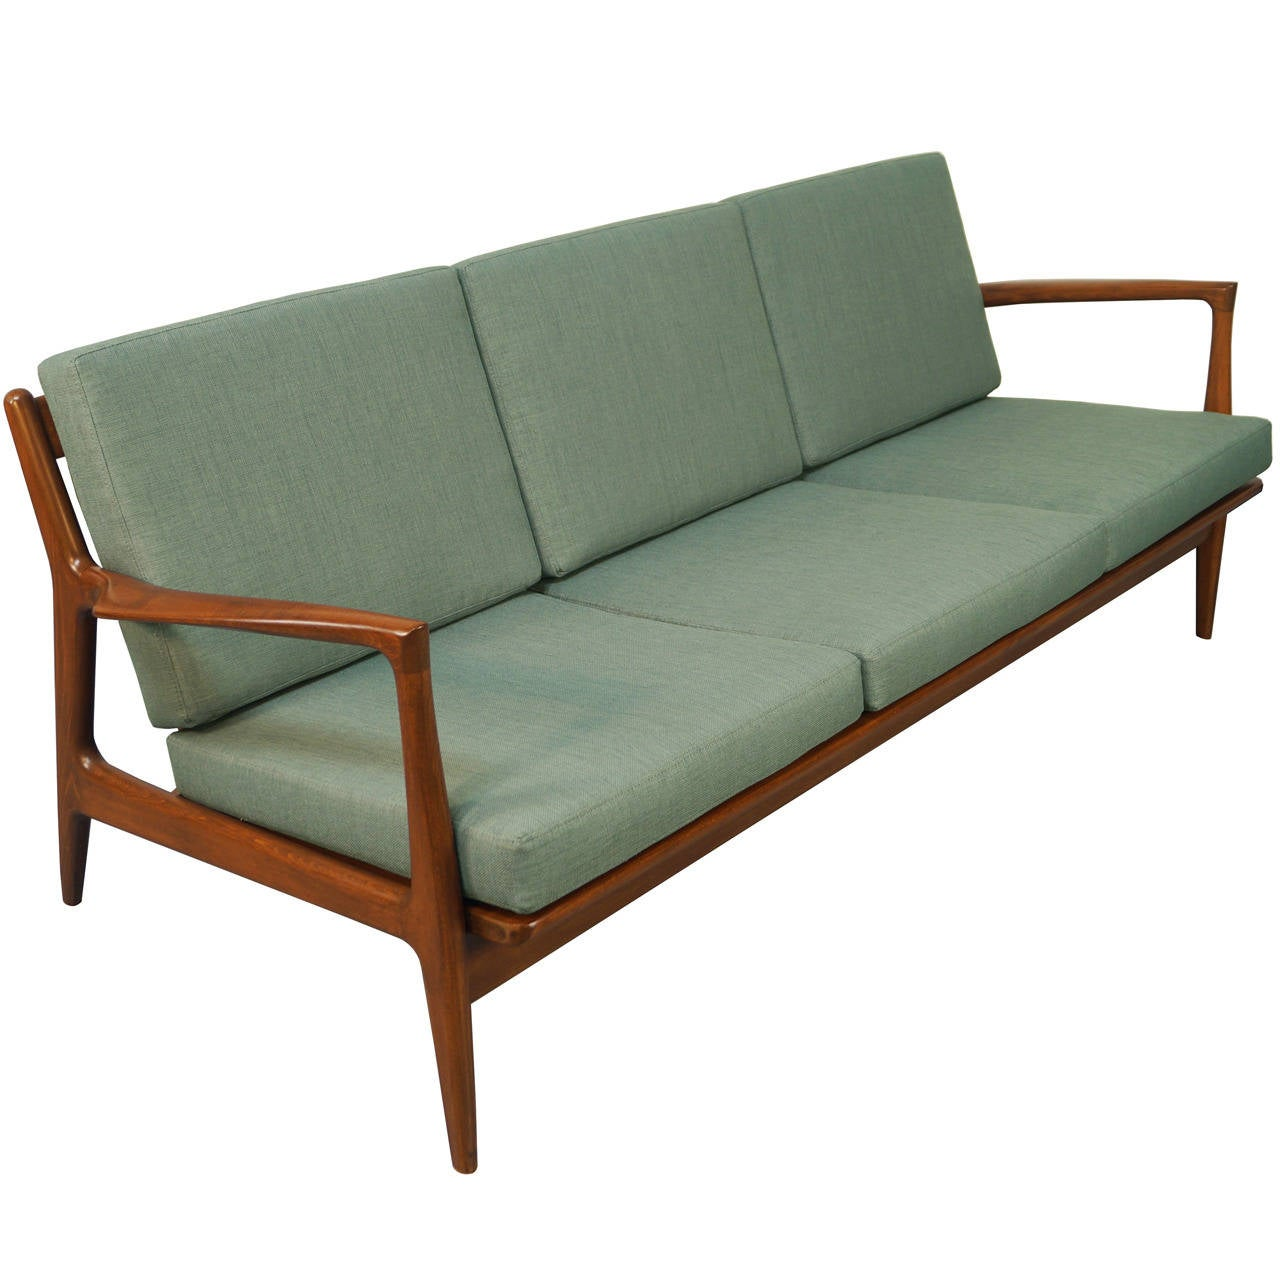 danish modern sofas catchy mid century modern sleeper sofa amazing vintage danish thesofa. Black Bedroom Furniture Sets. Home Design Ideas